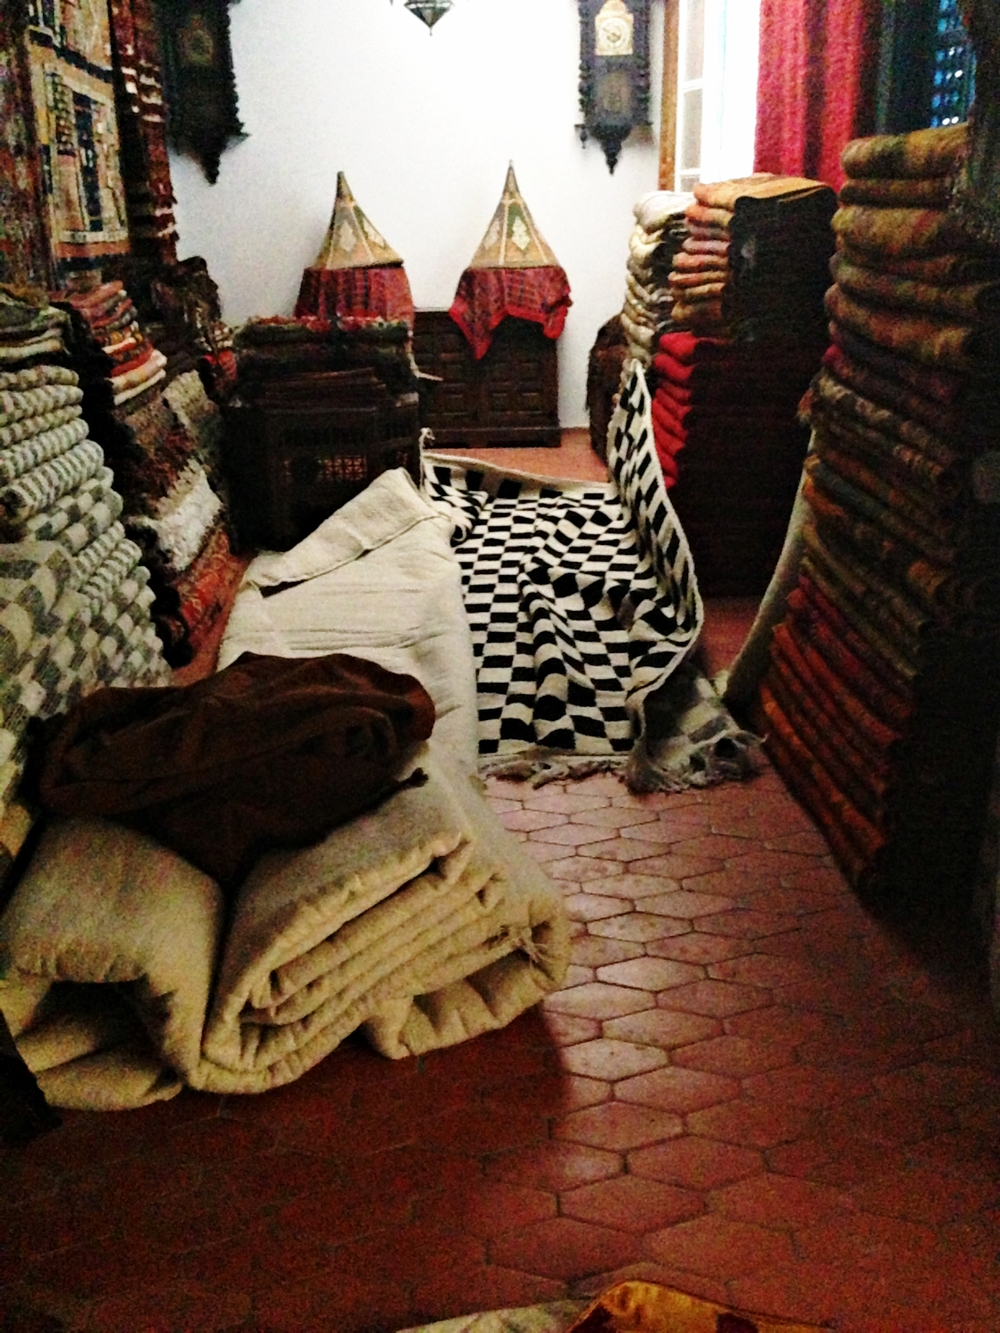 More rugs and textiles at Boutique Majid